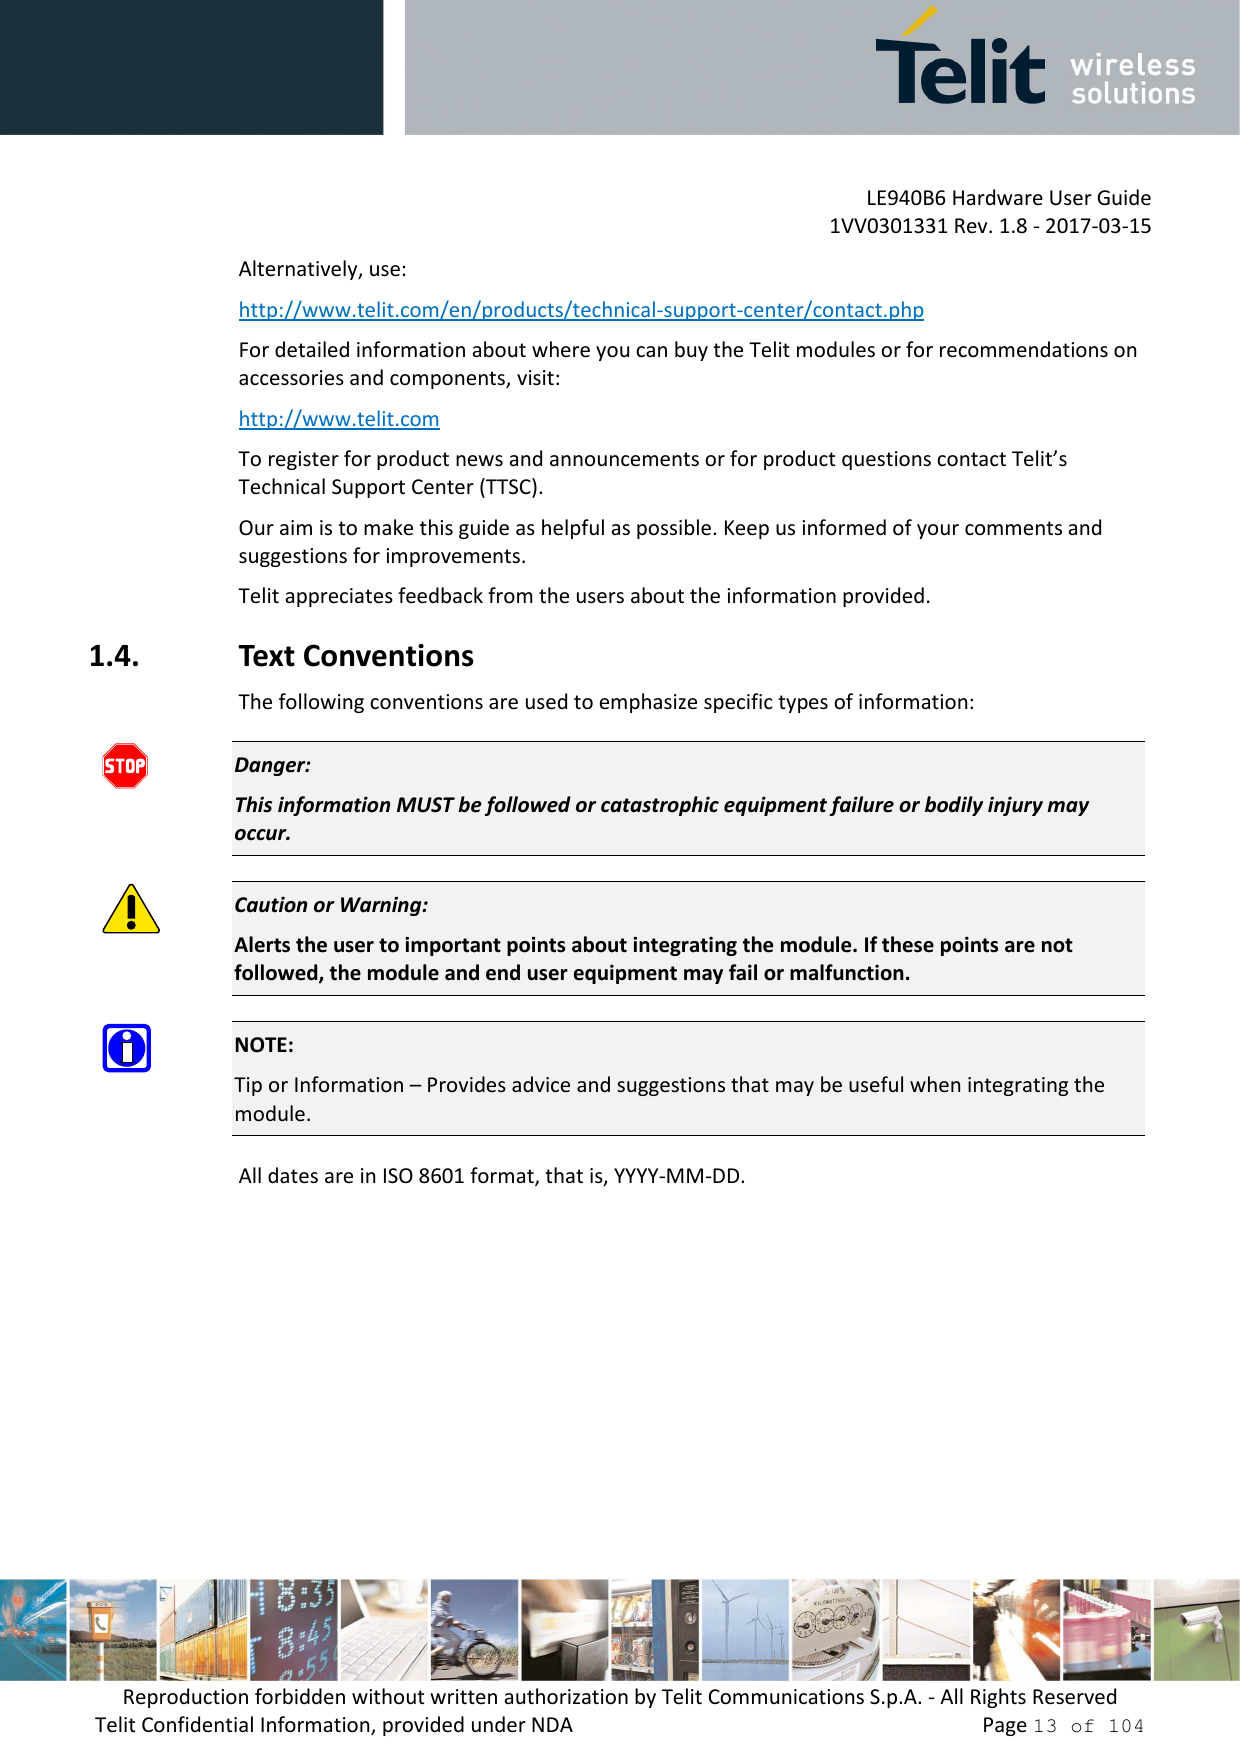 LE940B6 Hardware User Guide     1VV0301331 Rev. 1.8 - 2017-03-15 Reproduction forbidden without written authorization by Telit Communications S.p.A. - All Rights Reserved Telit Confidential Information, provided under NDA                 Page 13 of 104 Alternatively, use:  http://www.telit.com/en/products/technical-support-center/contact.php For detailed information about where you can buy the Telit modules or for recommendations on accessories and components, visit:  http://www.telit.com To register for product news and announcements or for product questions contact Telit's Technical Support Center (TTSC). Our aim is to make this guide as helpful as possible. Keep us informed of your comments and suggestions for improvements. Telit appreciates feedback from the users about the information provided. 1.4. Text Conventions The following conventions are used to emphasize specific types of information:  Danger: This information MUST be followed or catastrophic equipment failure or bodily injury may occur.  Caution or Warning: Alerts the user to important points about integrating the module. If these points are not followed, the module and end user equipment may fail or malfunction.  NOTE: Tip or Information – Provides advice and suggestions that may be useful when integrating the module. All dates are in ISO 8601 format, that is, YYYY-MM-DD.